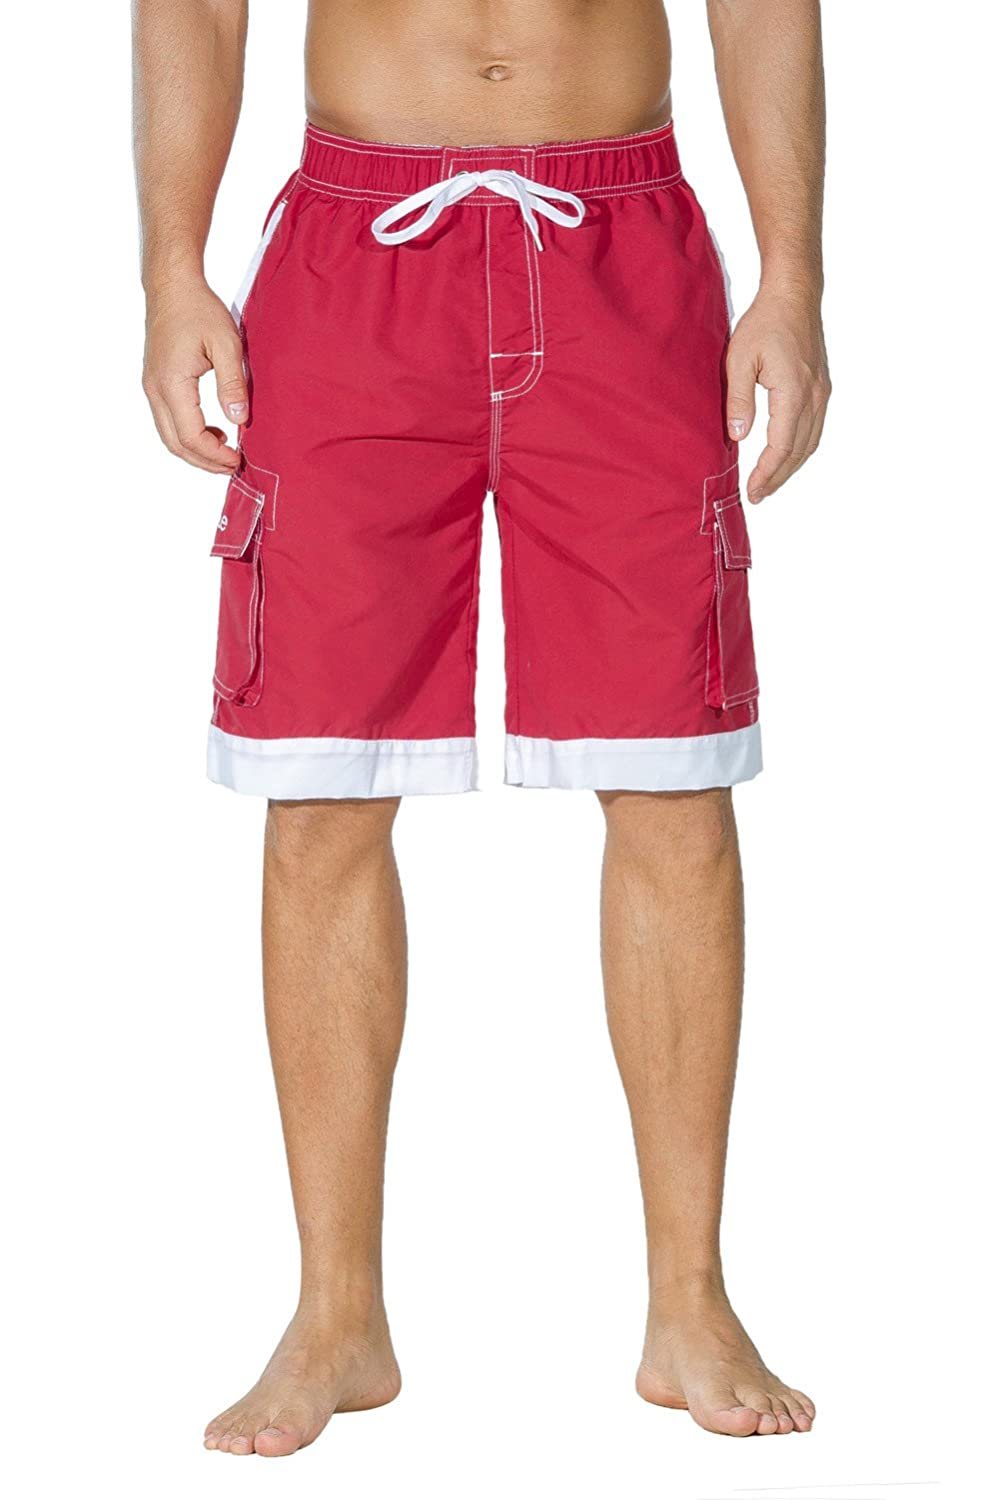 Nonwe Men's Surf Quick Dry Swim Trunks with Drawsting JF16169